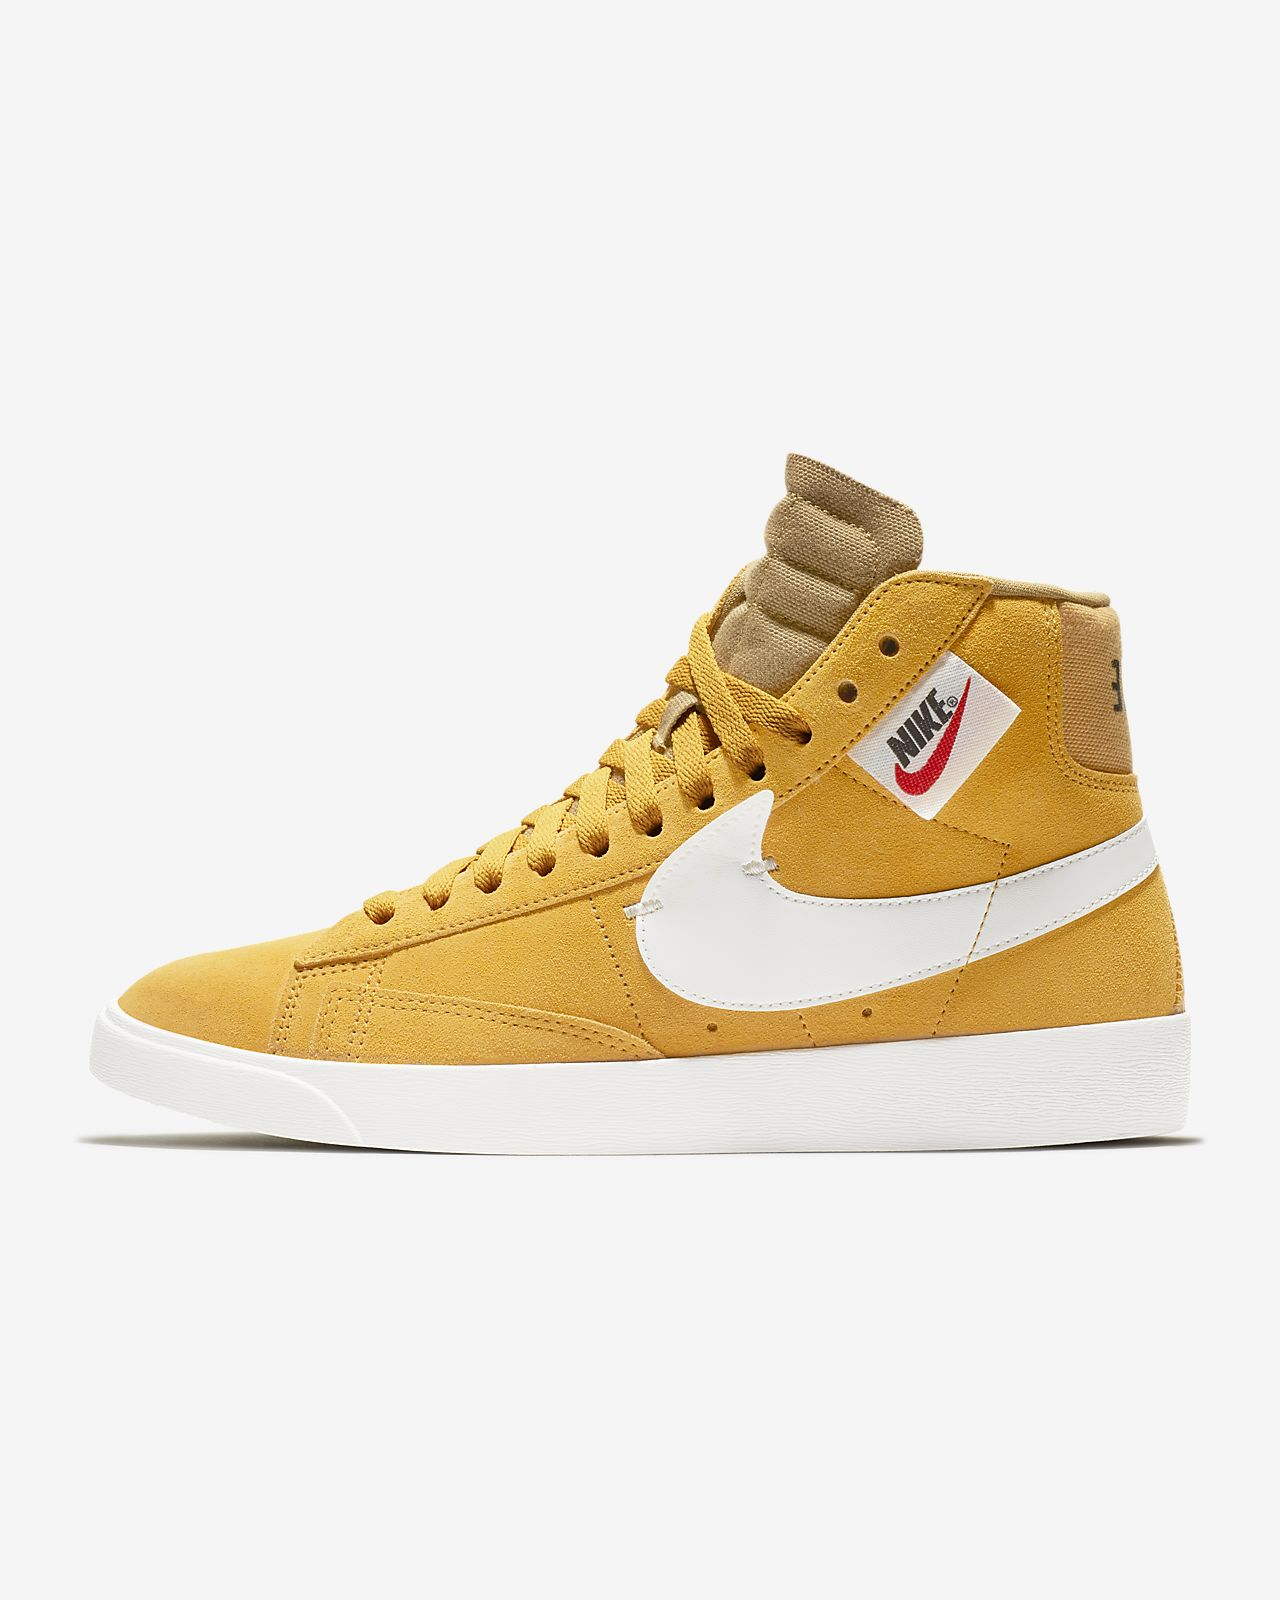 best sneakers 0f546 2c0ea ... Chaussure Nike Blazer Mid Rebel pour Femme